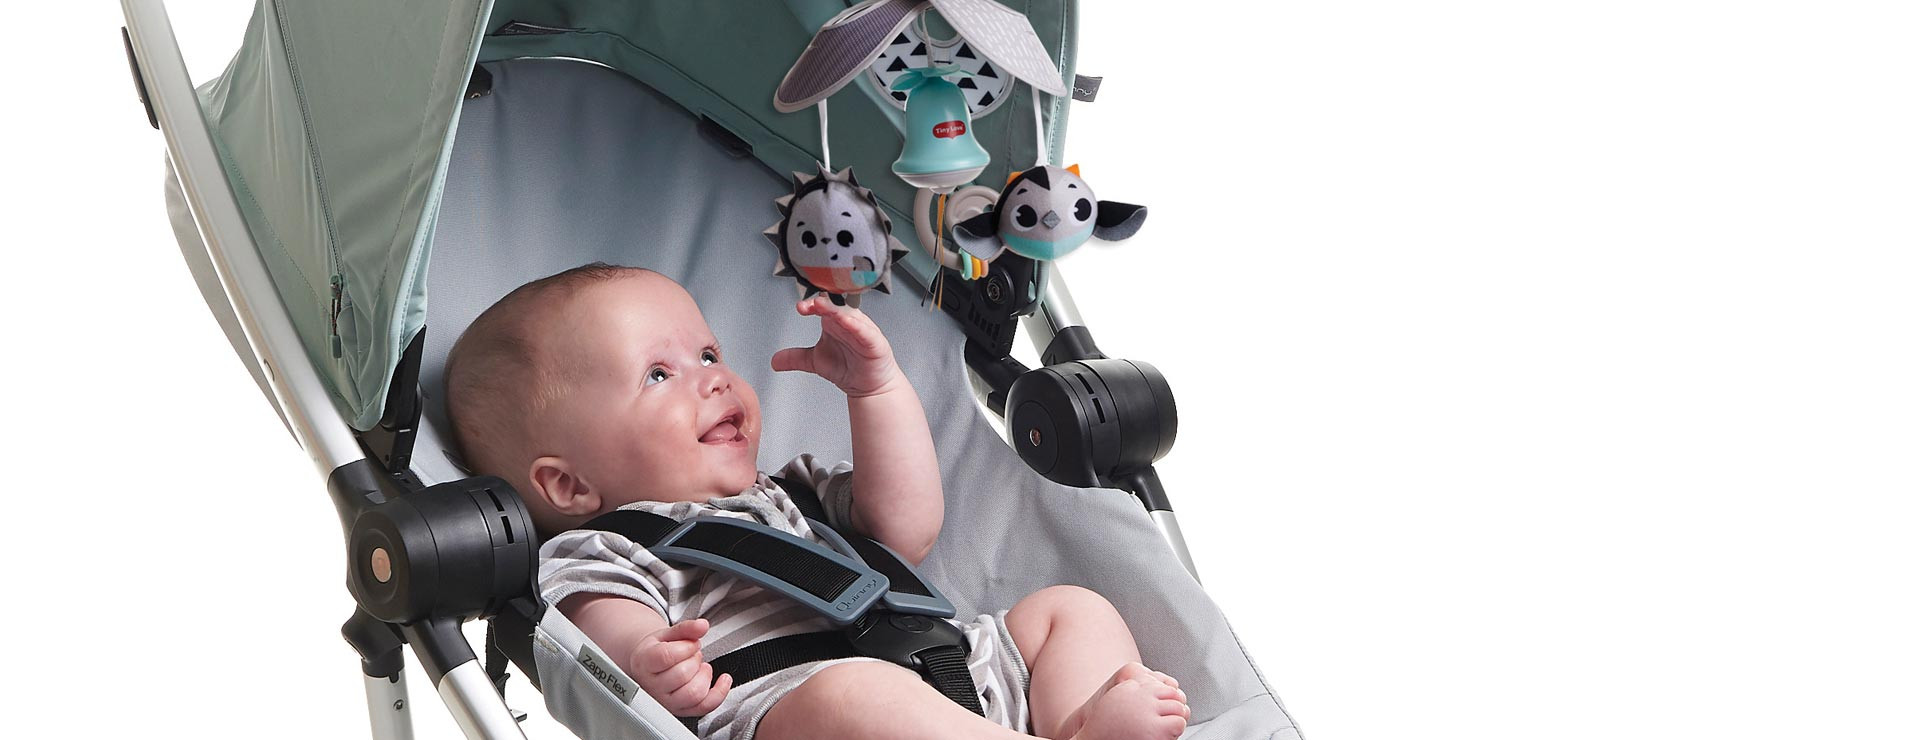 Geometric black & white design stimulates babies' vision